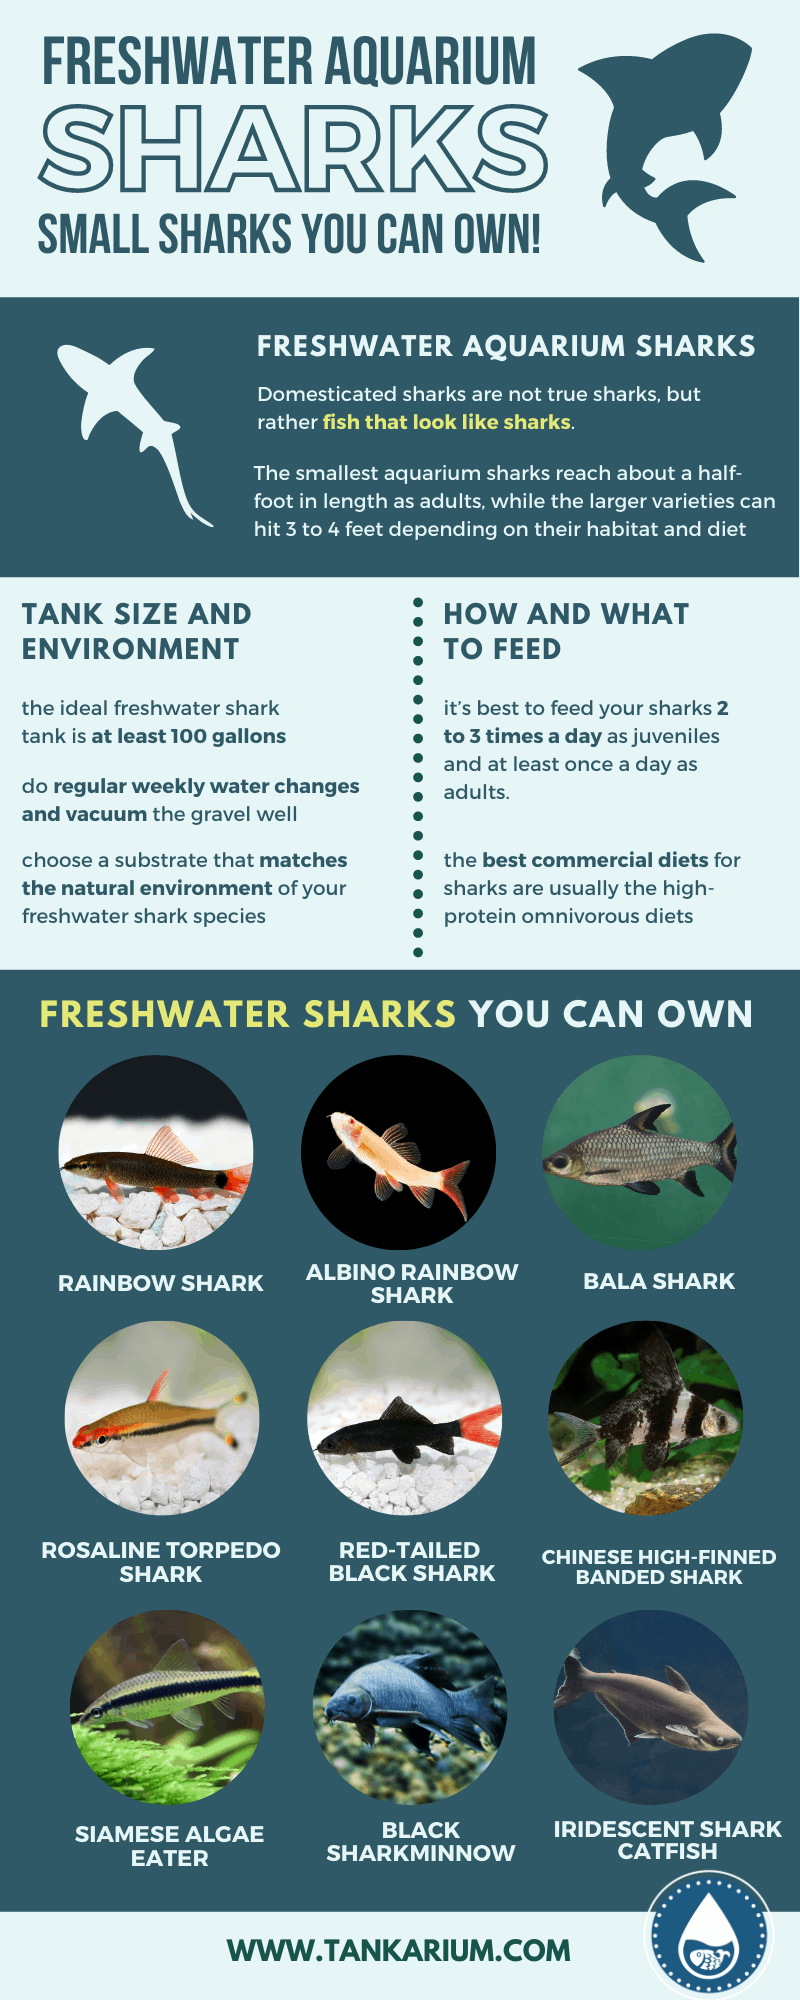 Freshwater Aquarium Sharks_ Small Sharks You Can Own!- infographic